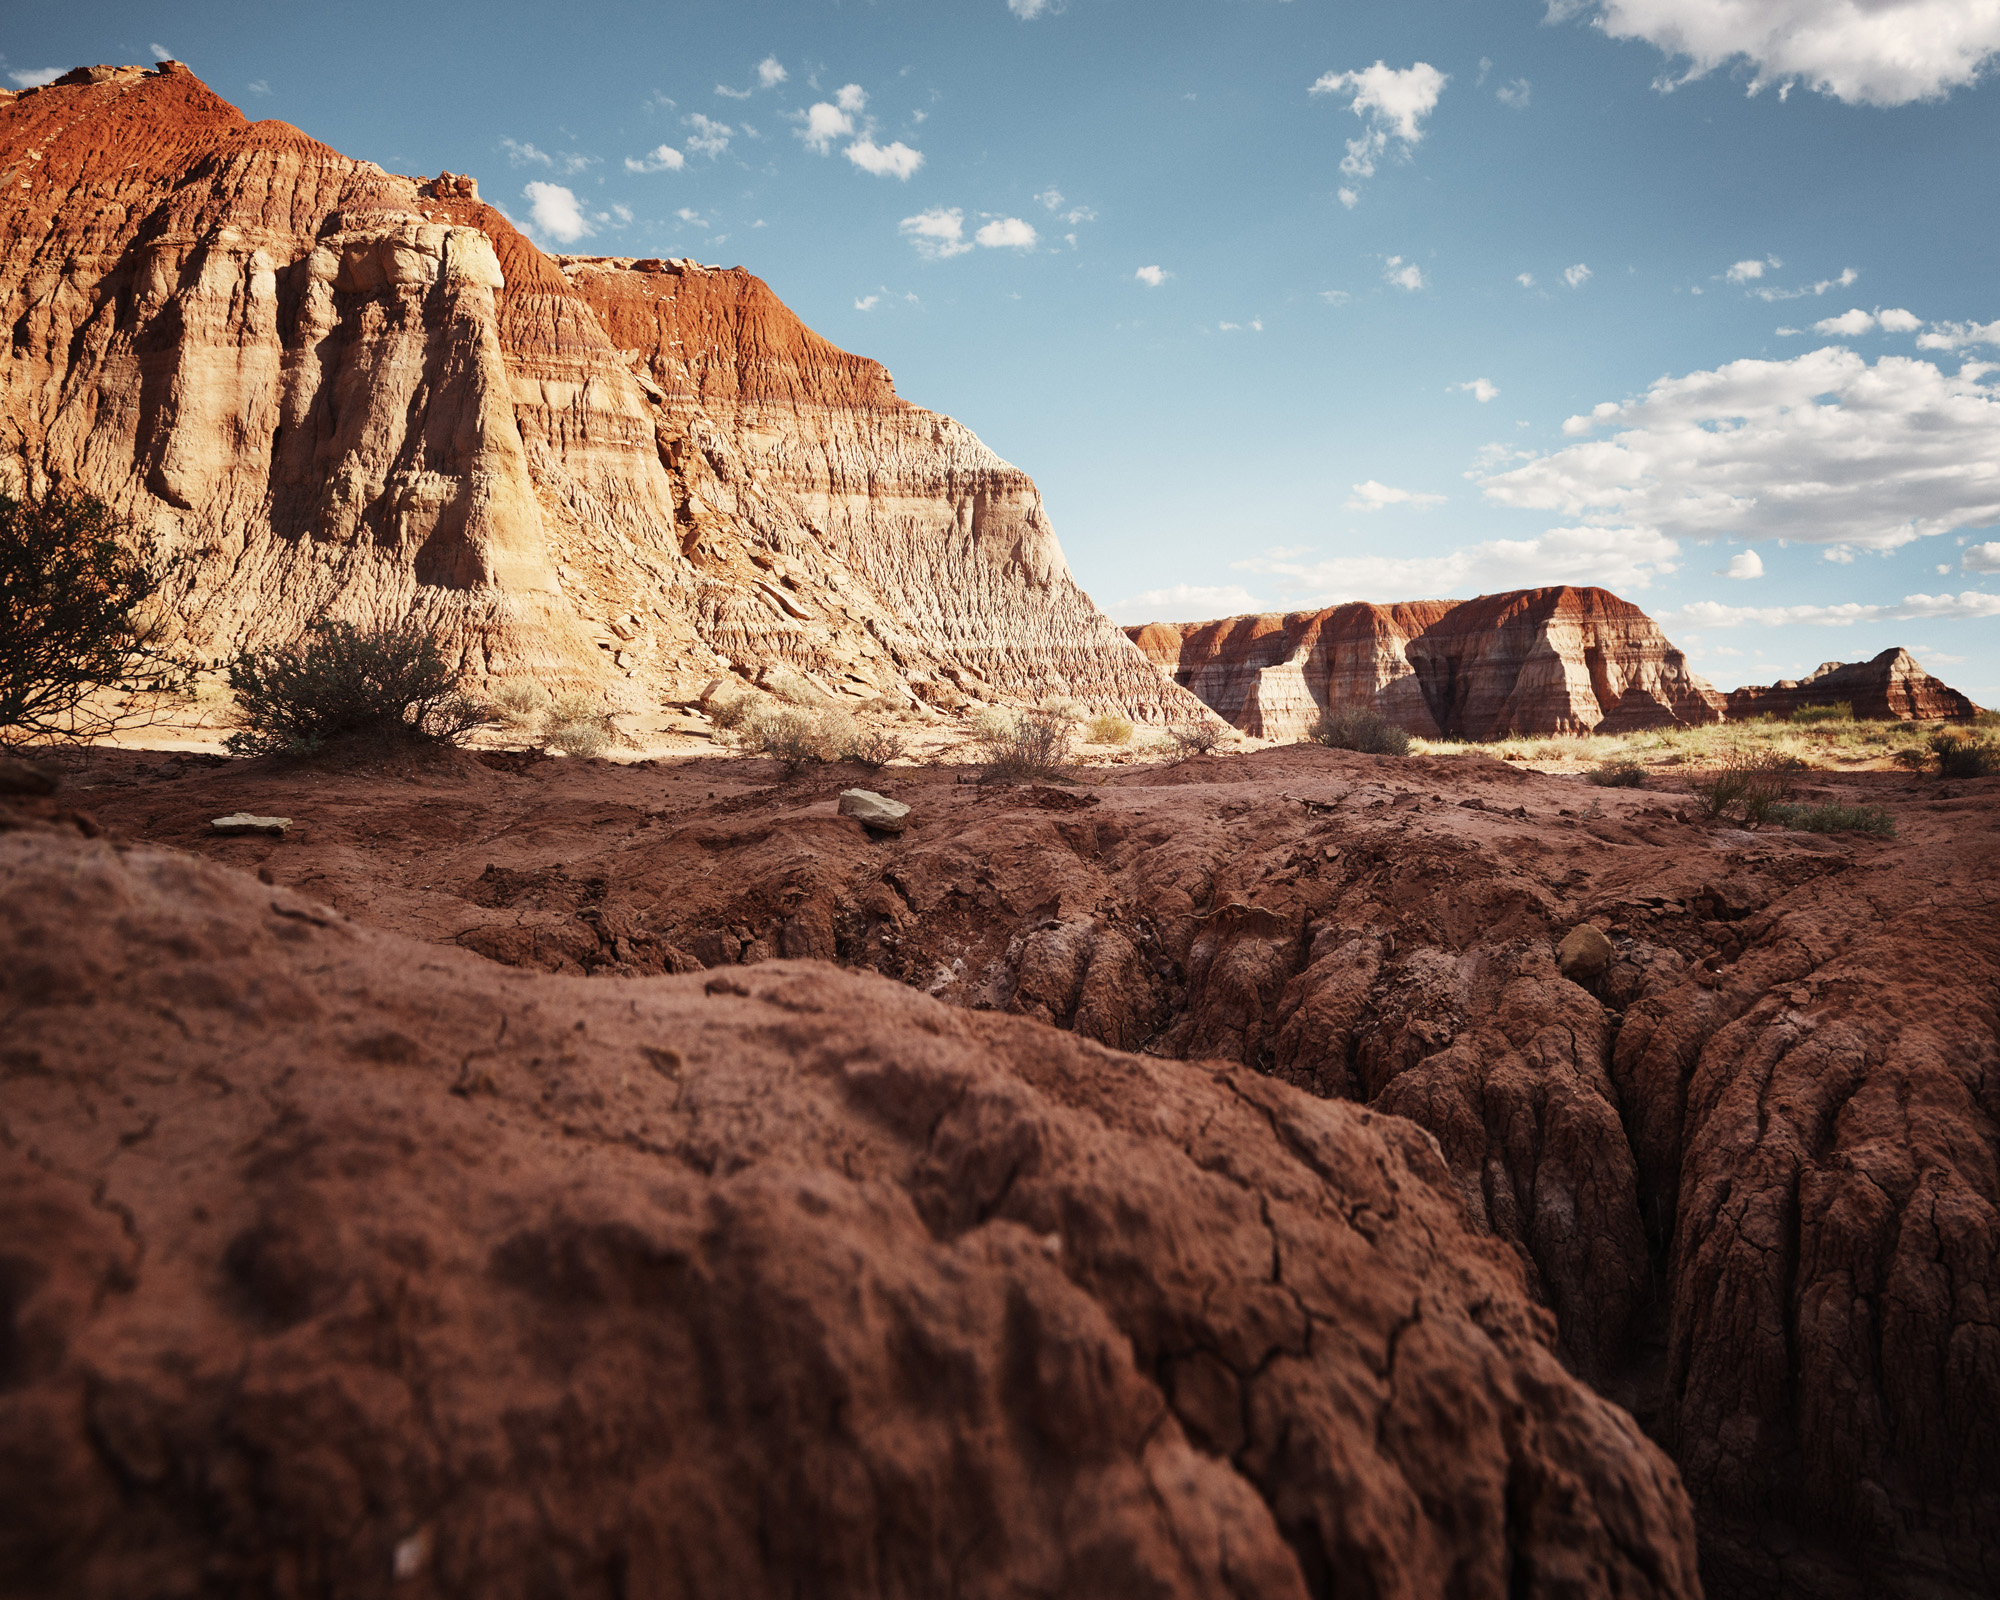 We were blown away by the landscape that surrounded us in Southern Utah.